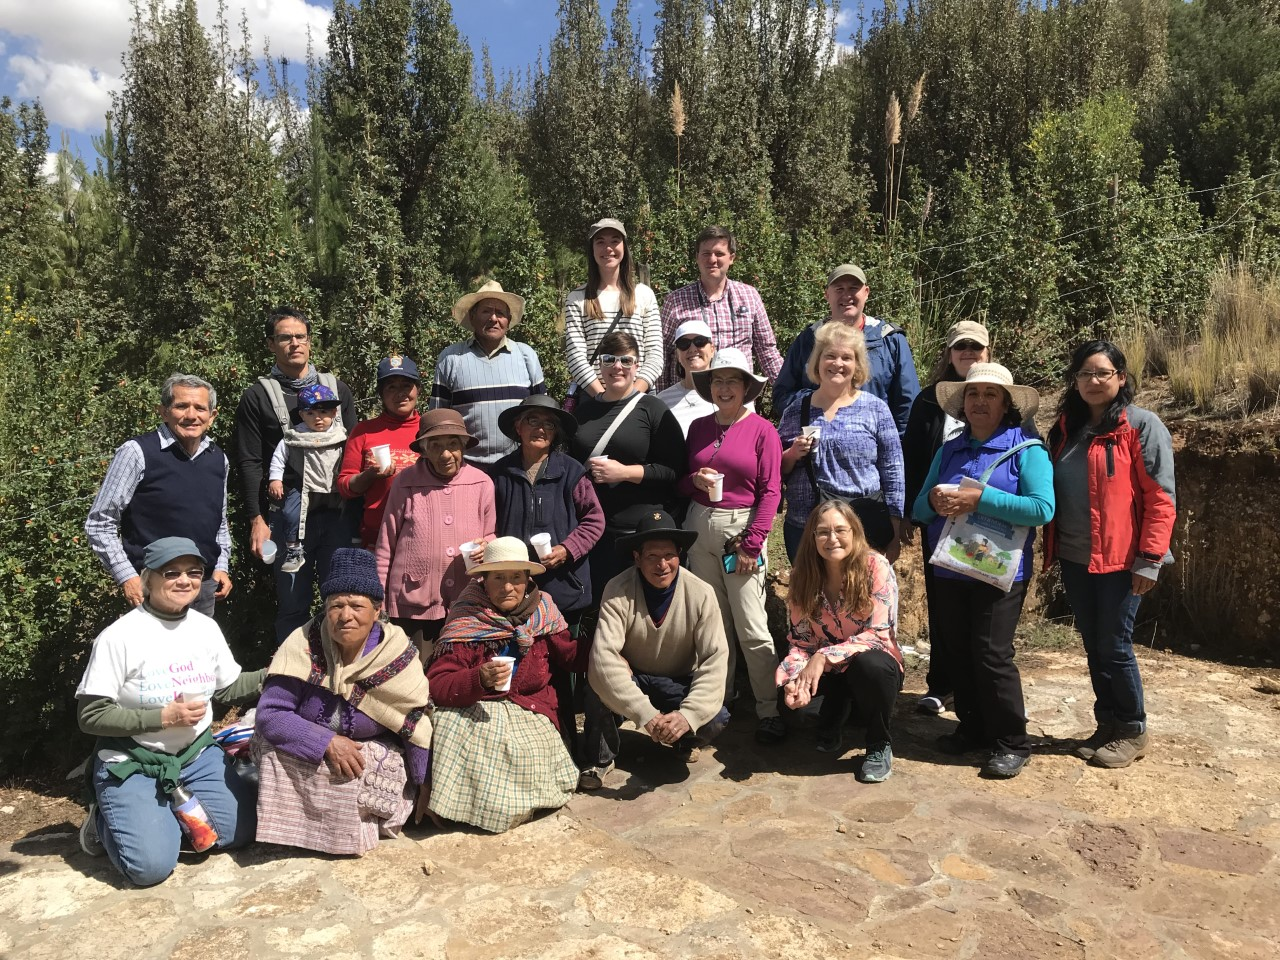 Giddings-Lovejoy continues to travel to Peru to learn, strategize and serve together with friends from La Oroya. Photo Credit: Jed Koball